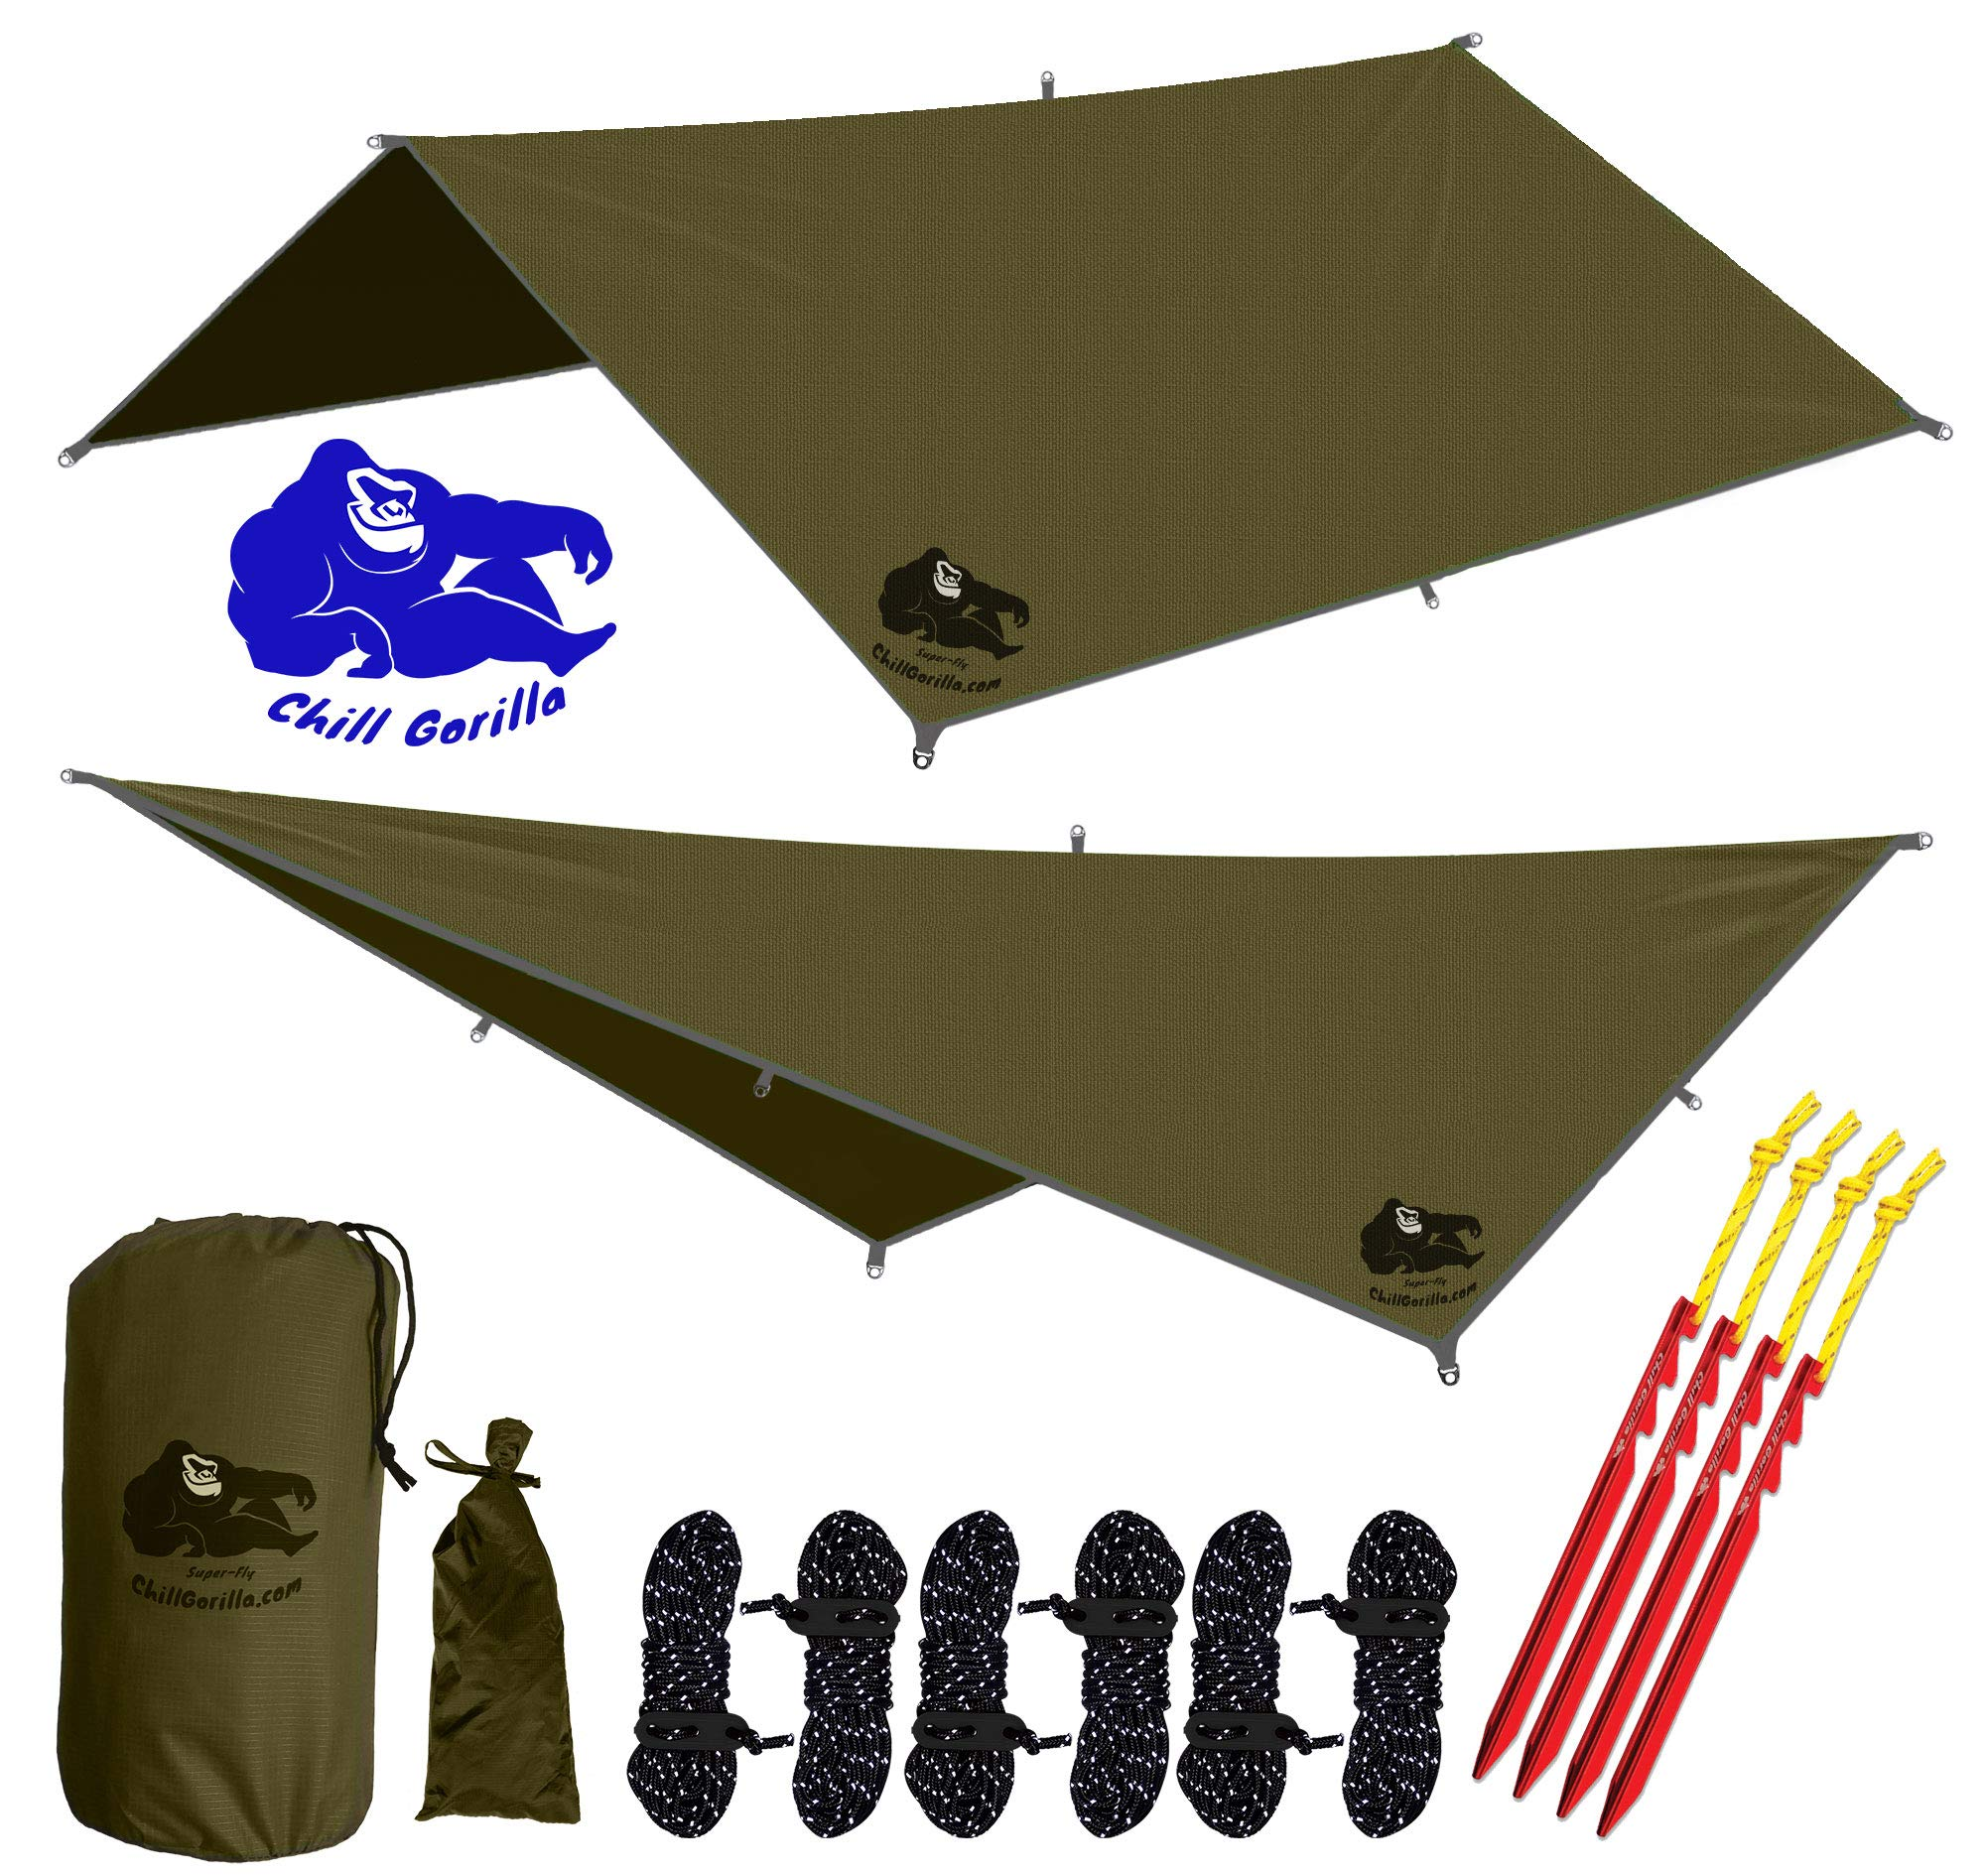 Chill Gorilla 10x10 Hammock Rain Fly Camping Tarp. Ripstop Nylon. 170'' Centerline. Stakes, Ropes & Tensioners Included. Camping Gear & Accessories. Perfect Hammock Tent. OD Green by Chill Gorilla